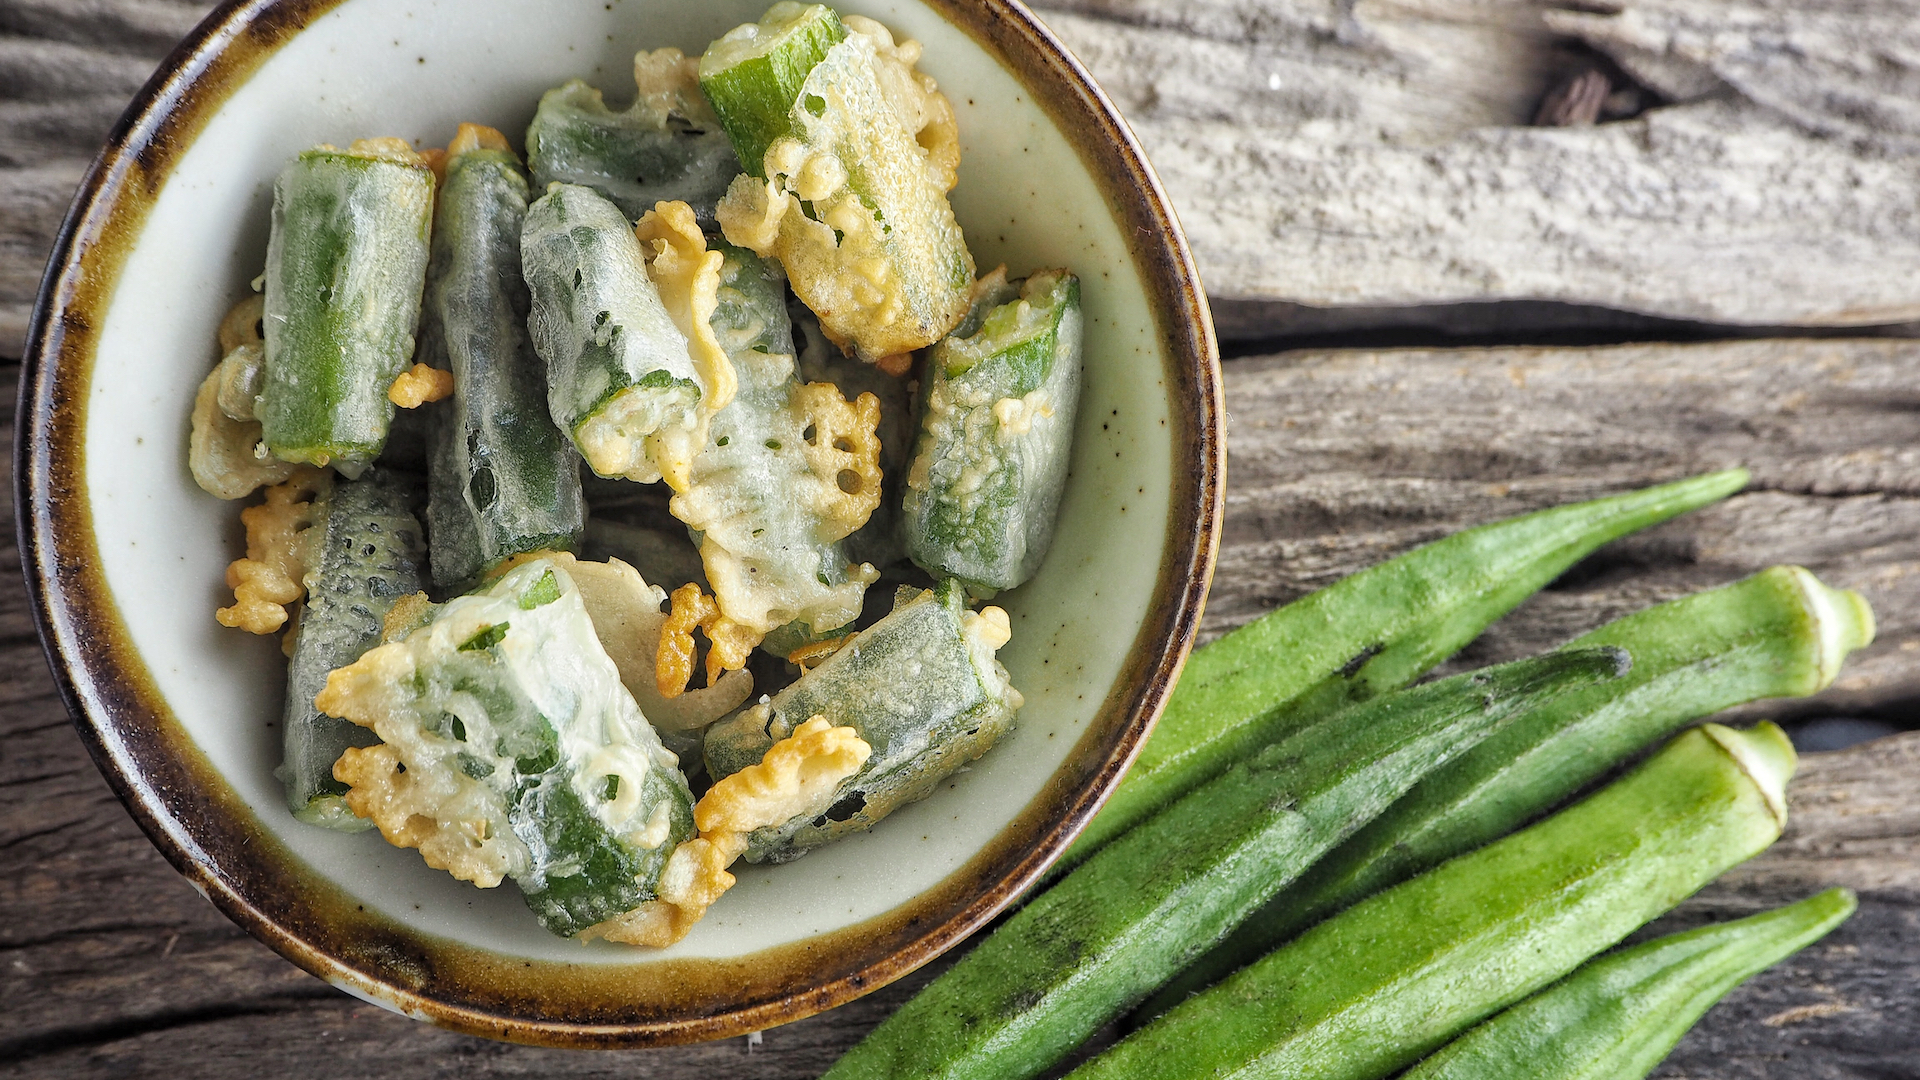 Fried Okra Recipes To Try This Fall Sheknows